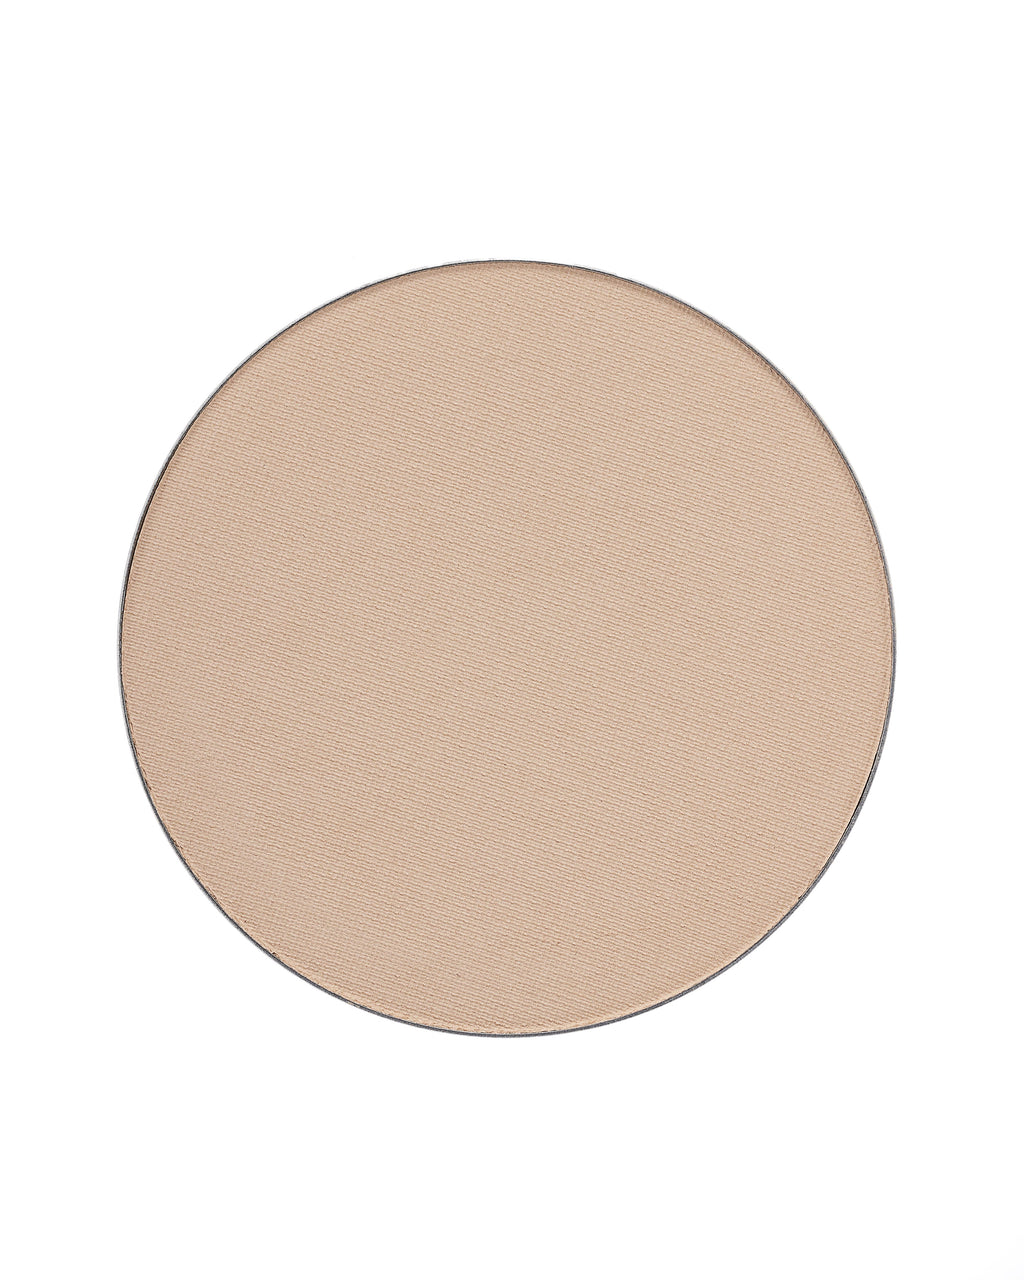 Powder Foundation Magnetic Pan in Tender